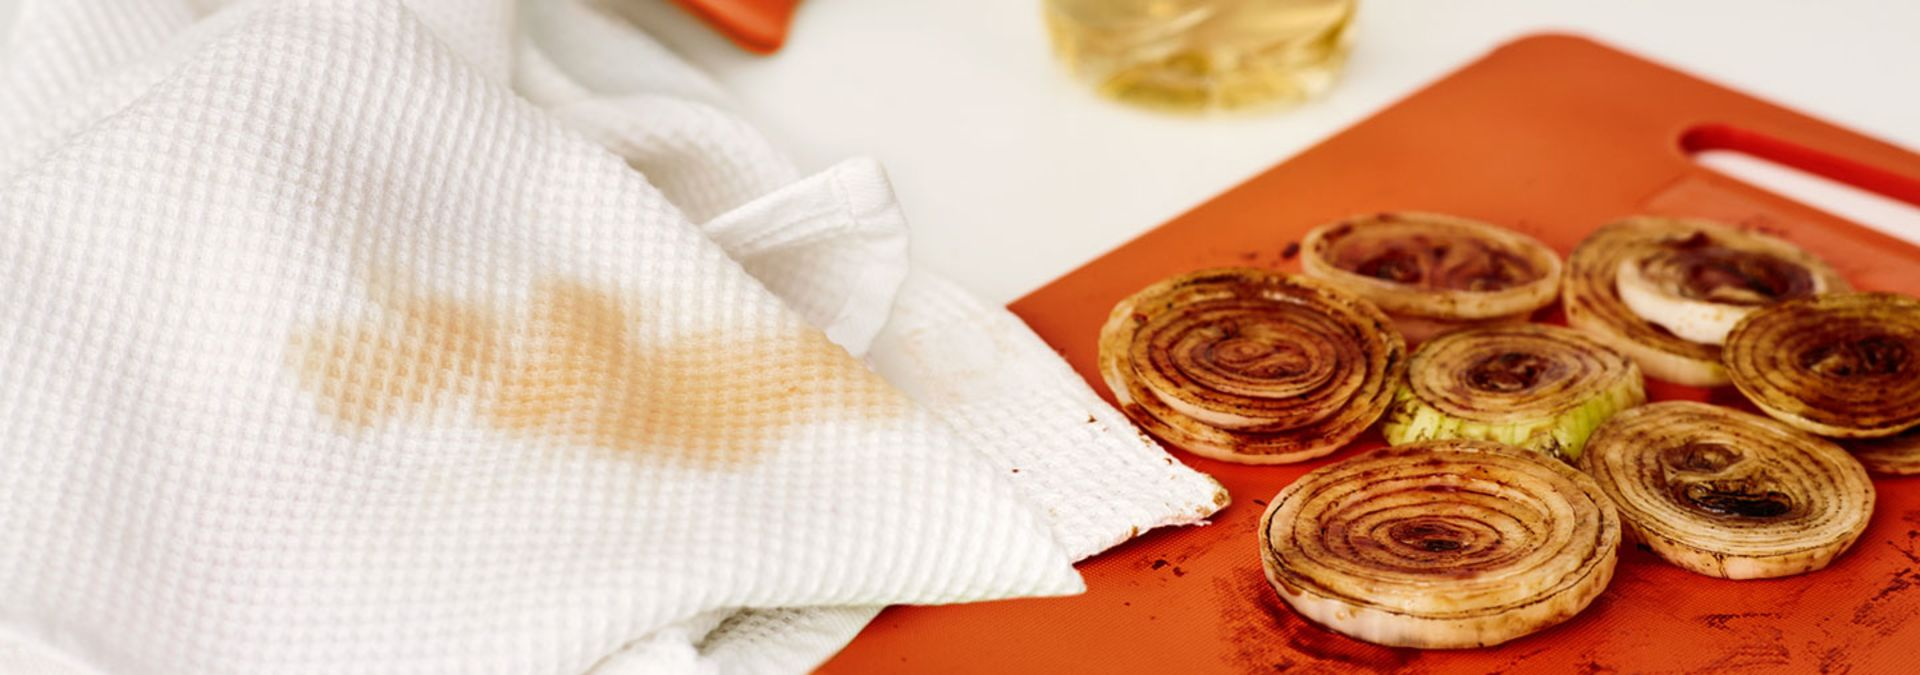 Oil-stained kitchen towel